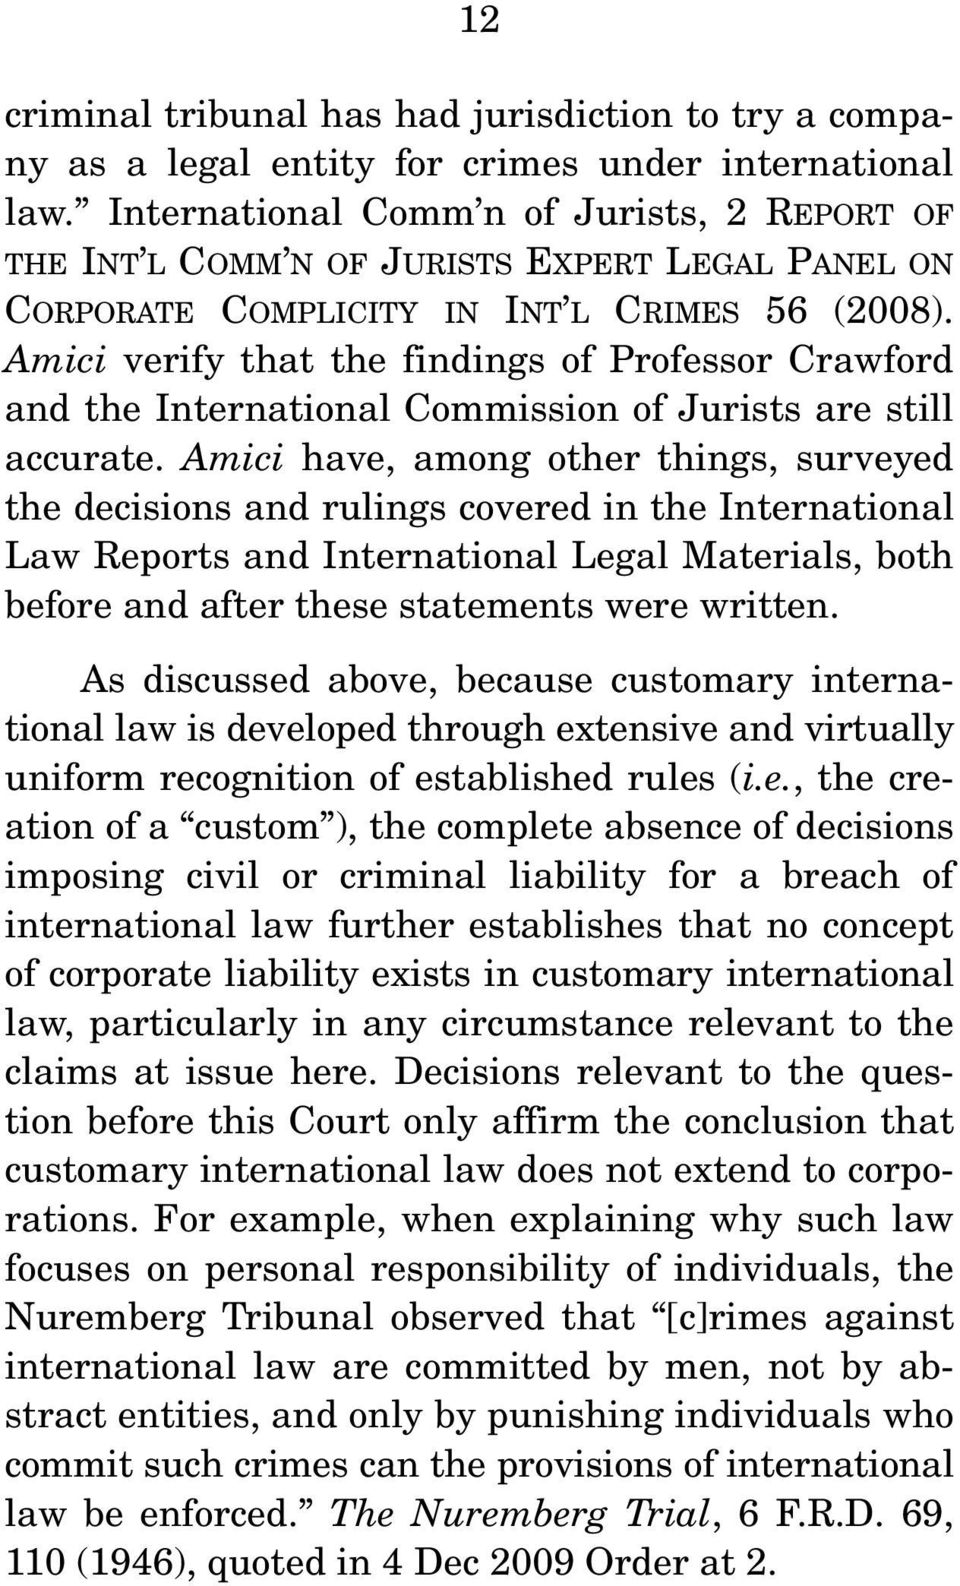 Amici verify that the findings of Professor Crawford and the International Commission of Jurists are still accurate.